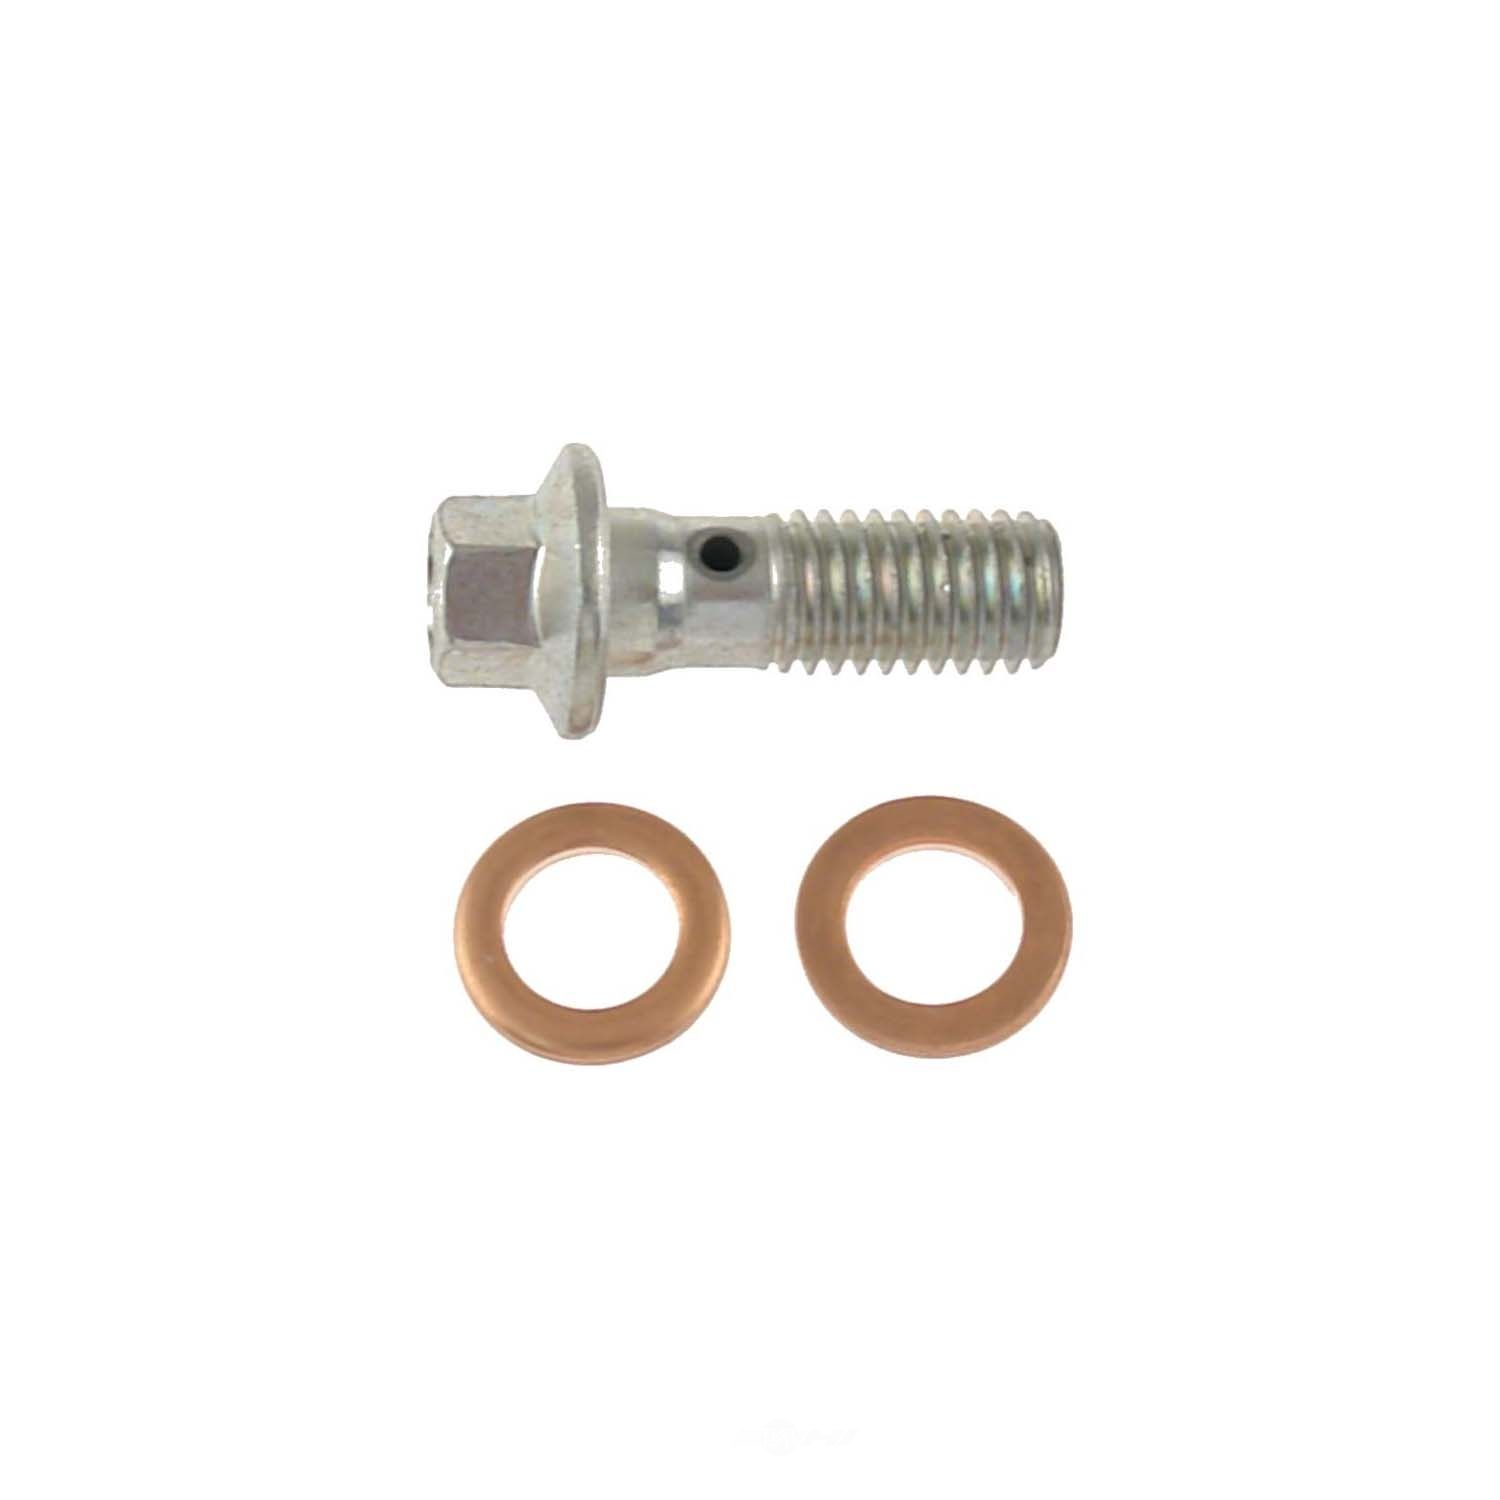 CARLSON QUALITY BRAKE PARTS - Brake Hydraulic Banjo Bolt - CRL H9470-2